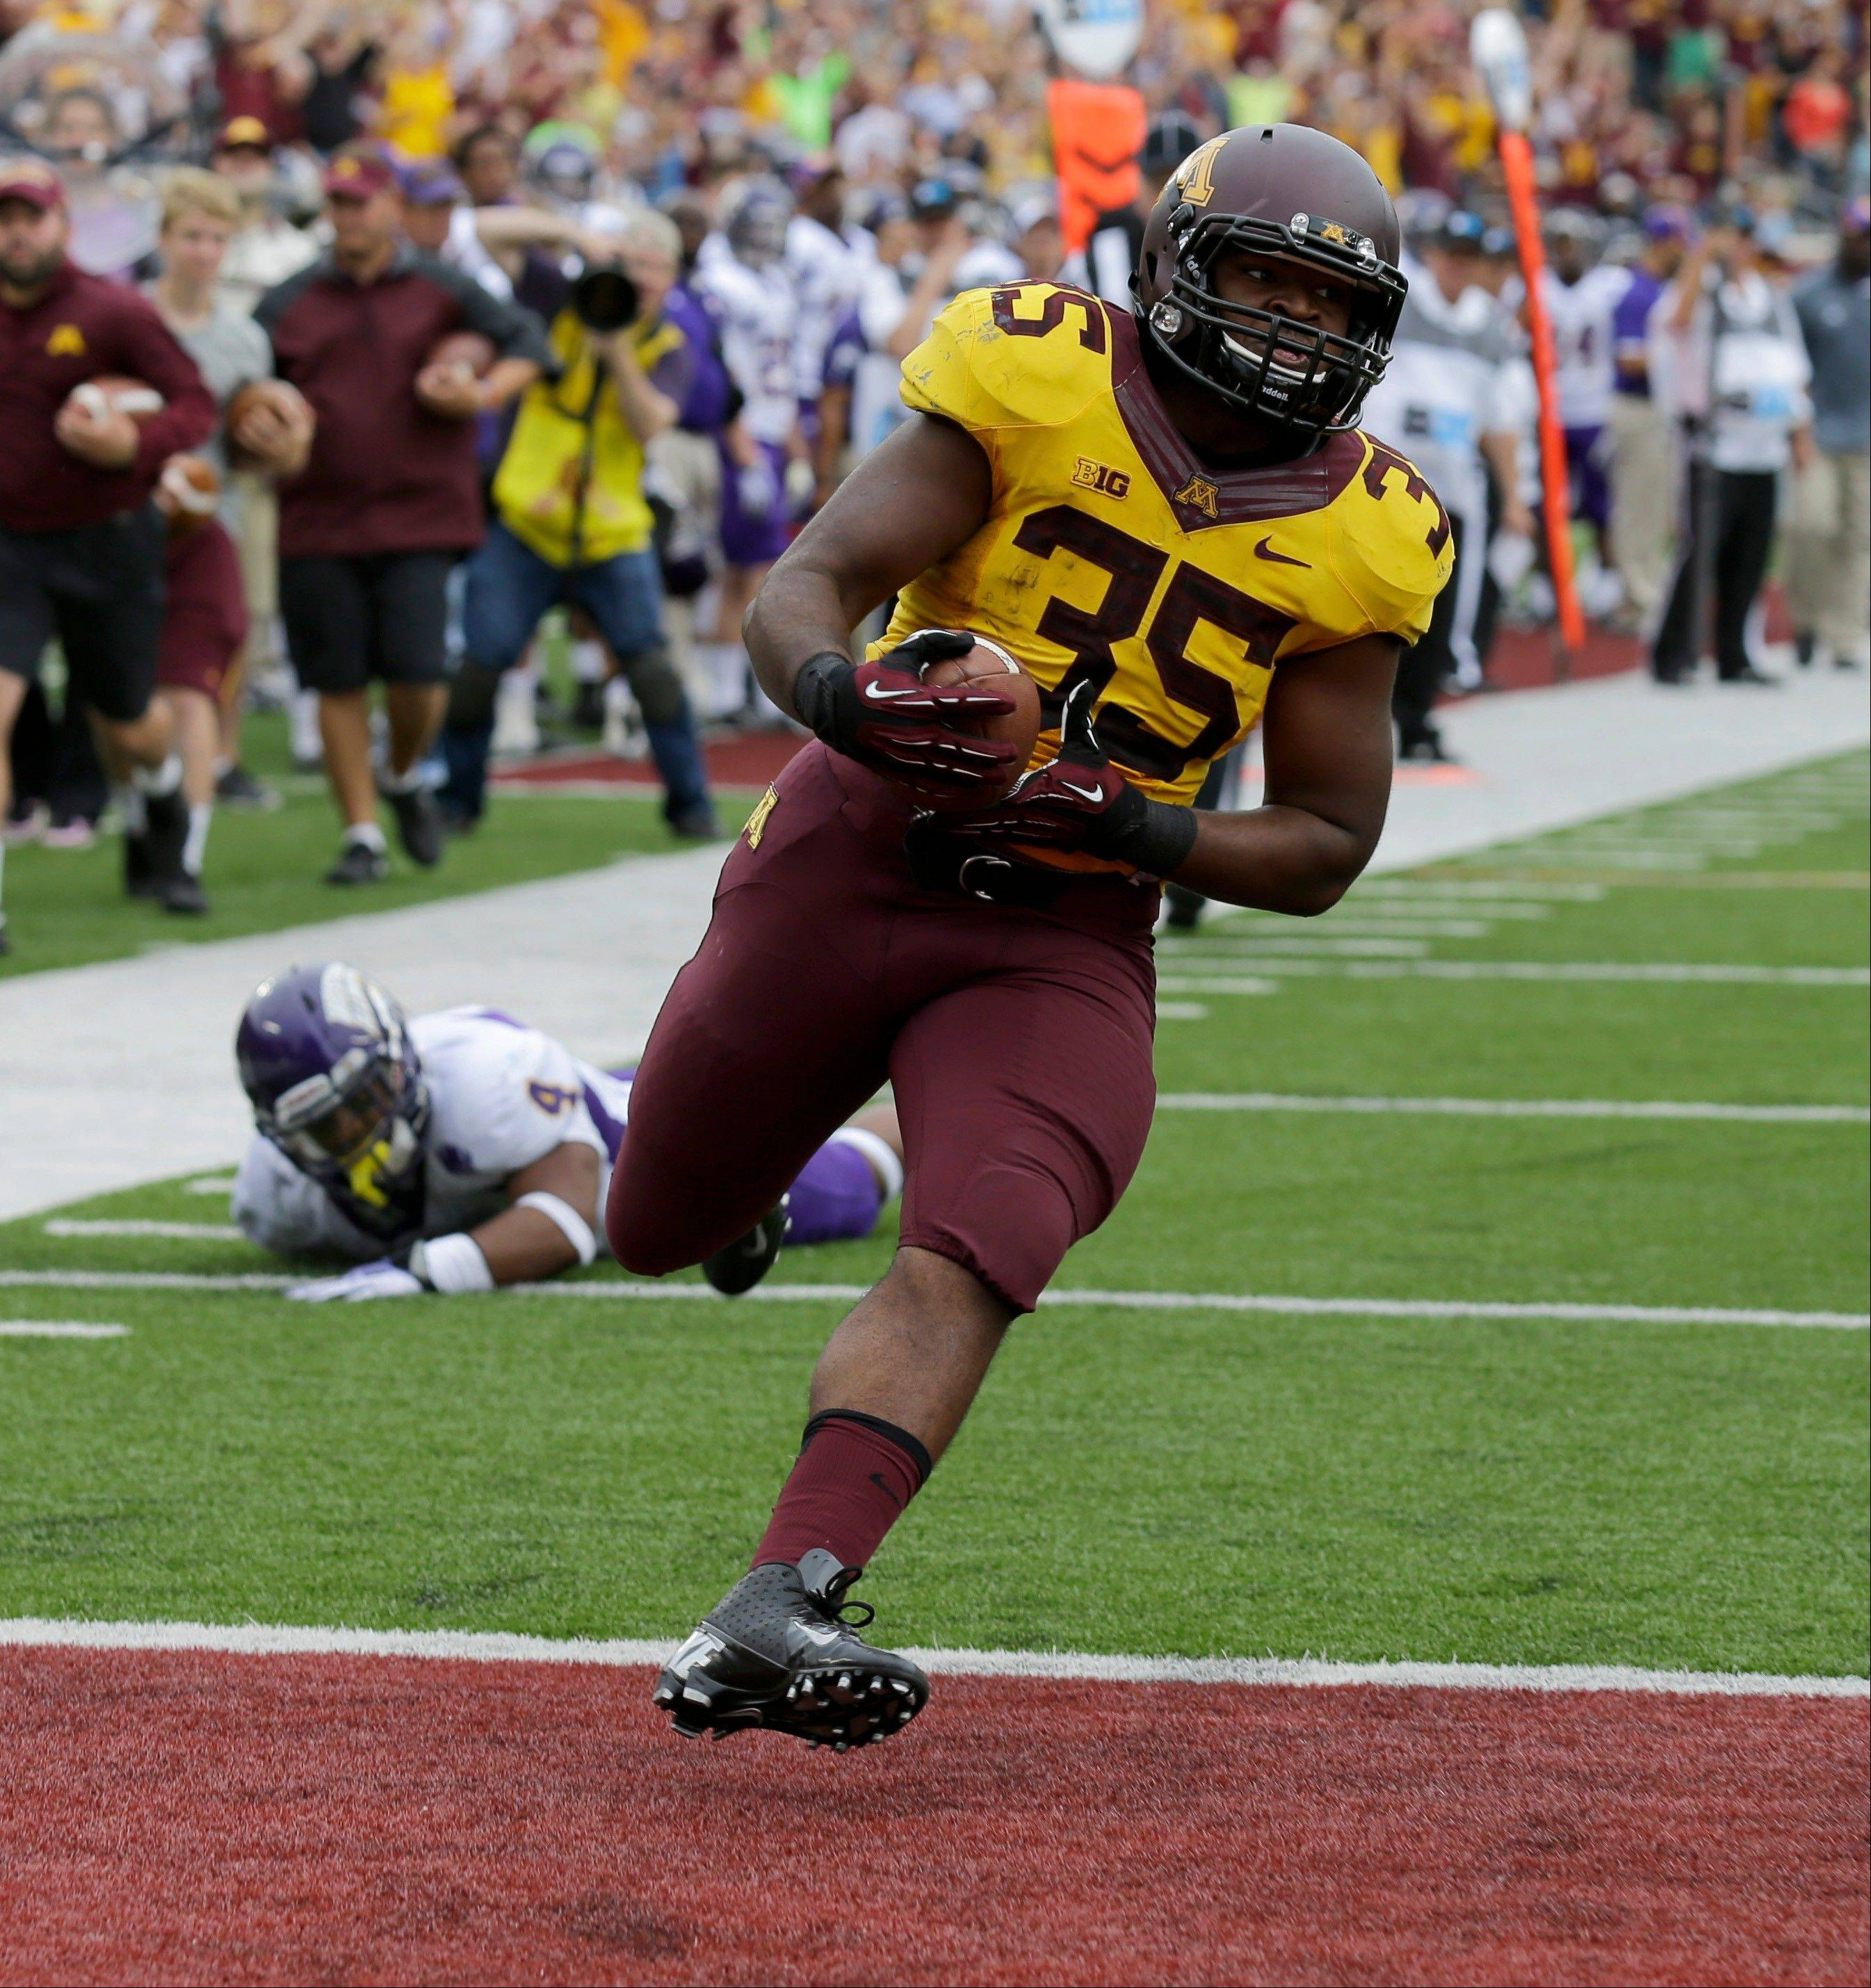 Minnesota�s Rodrick Williams Jr. scores on a 37-yard touchdown run during the fourth quarter of last week�s win over Western Illinois.